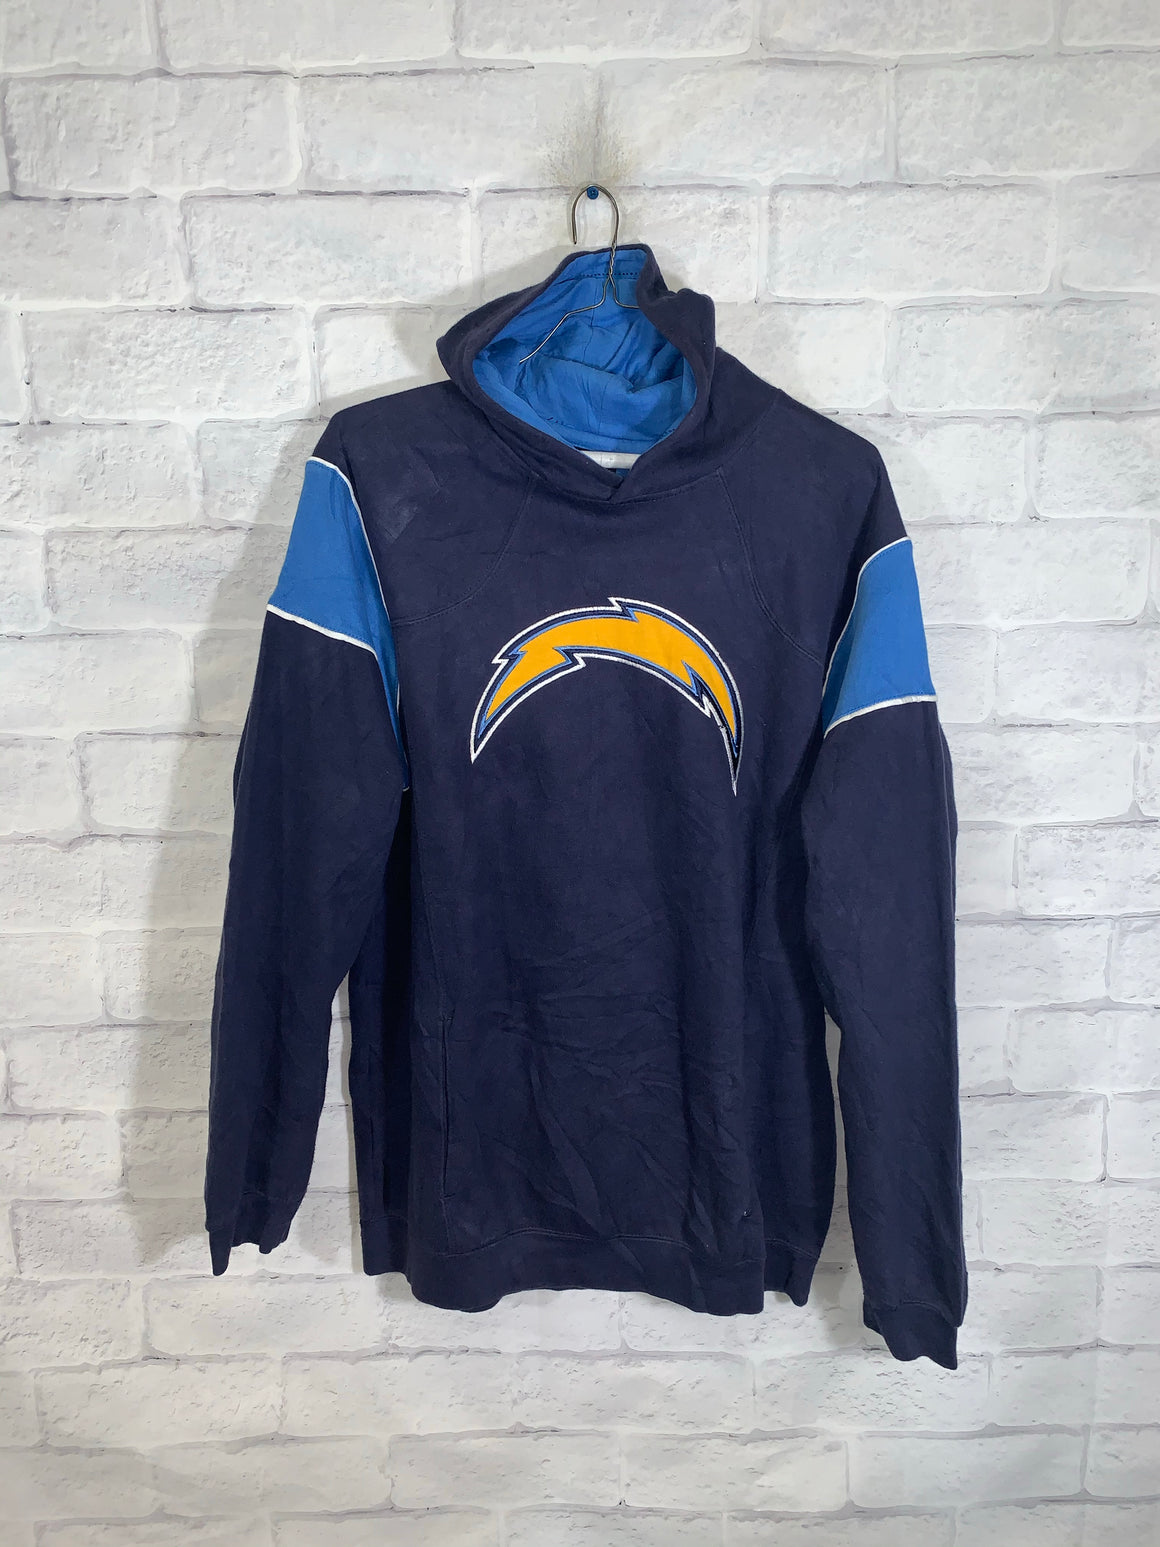 San Diego Chargers hoodie SZ womens xs